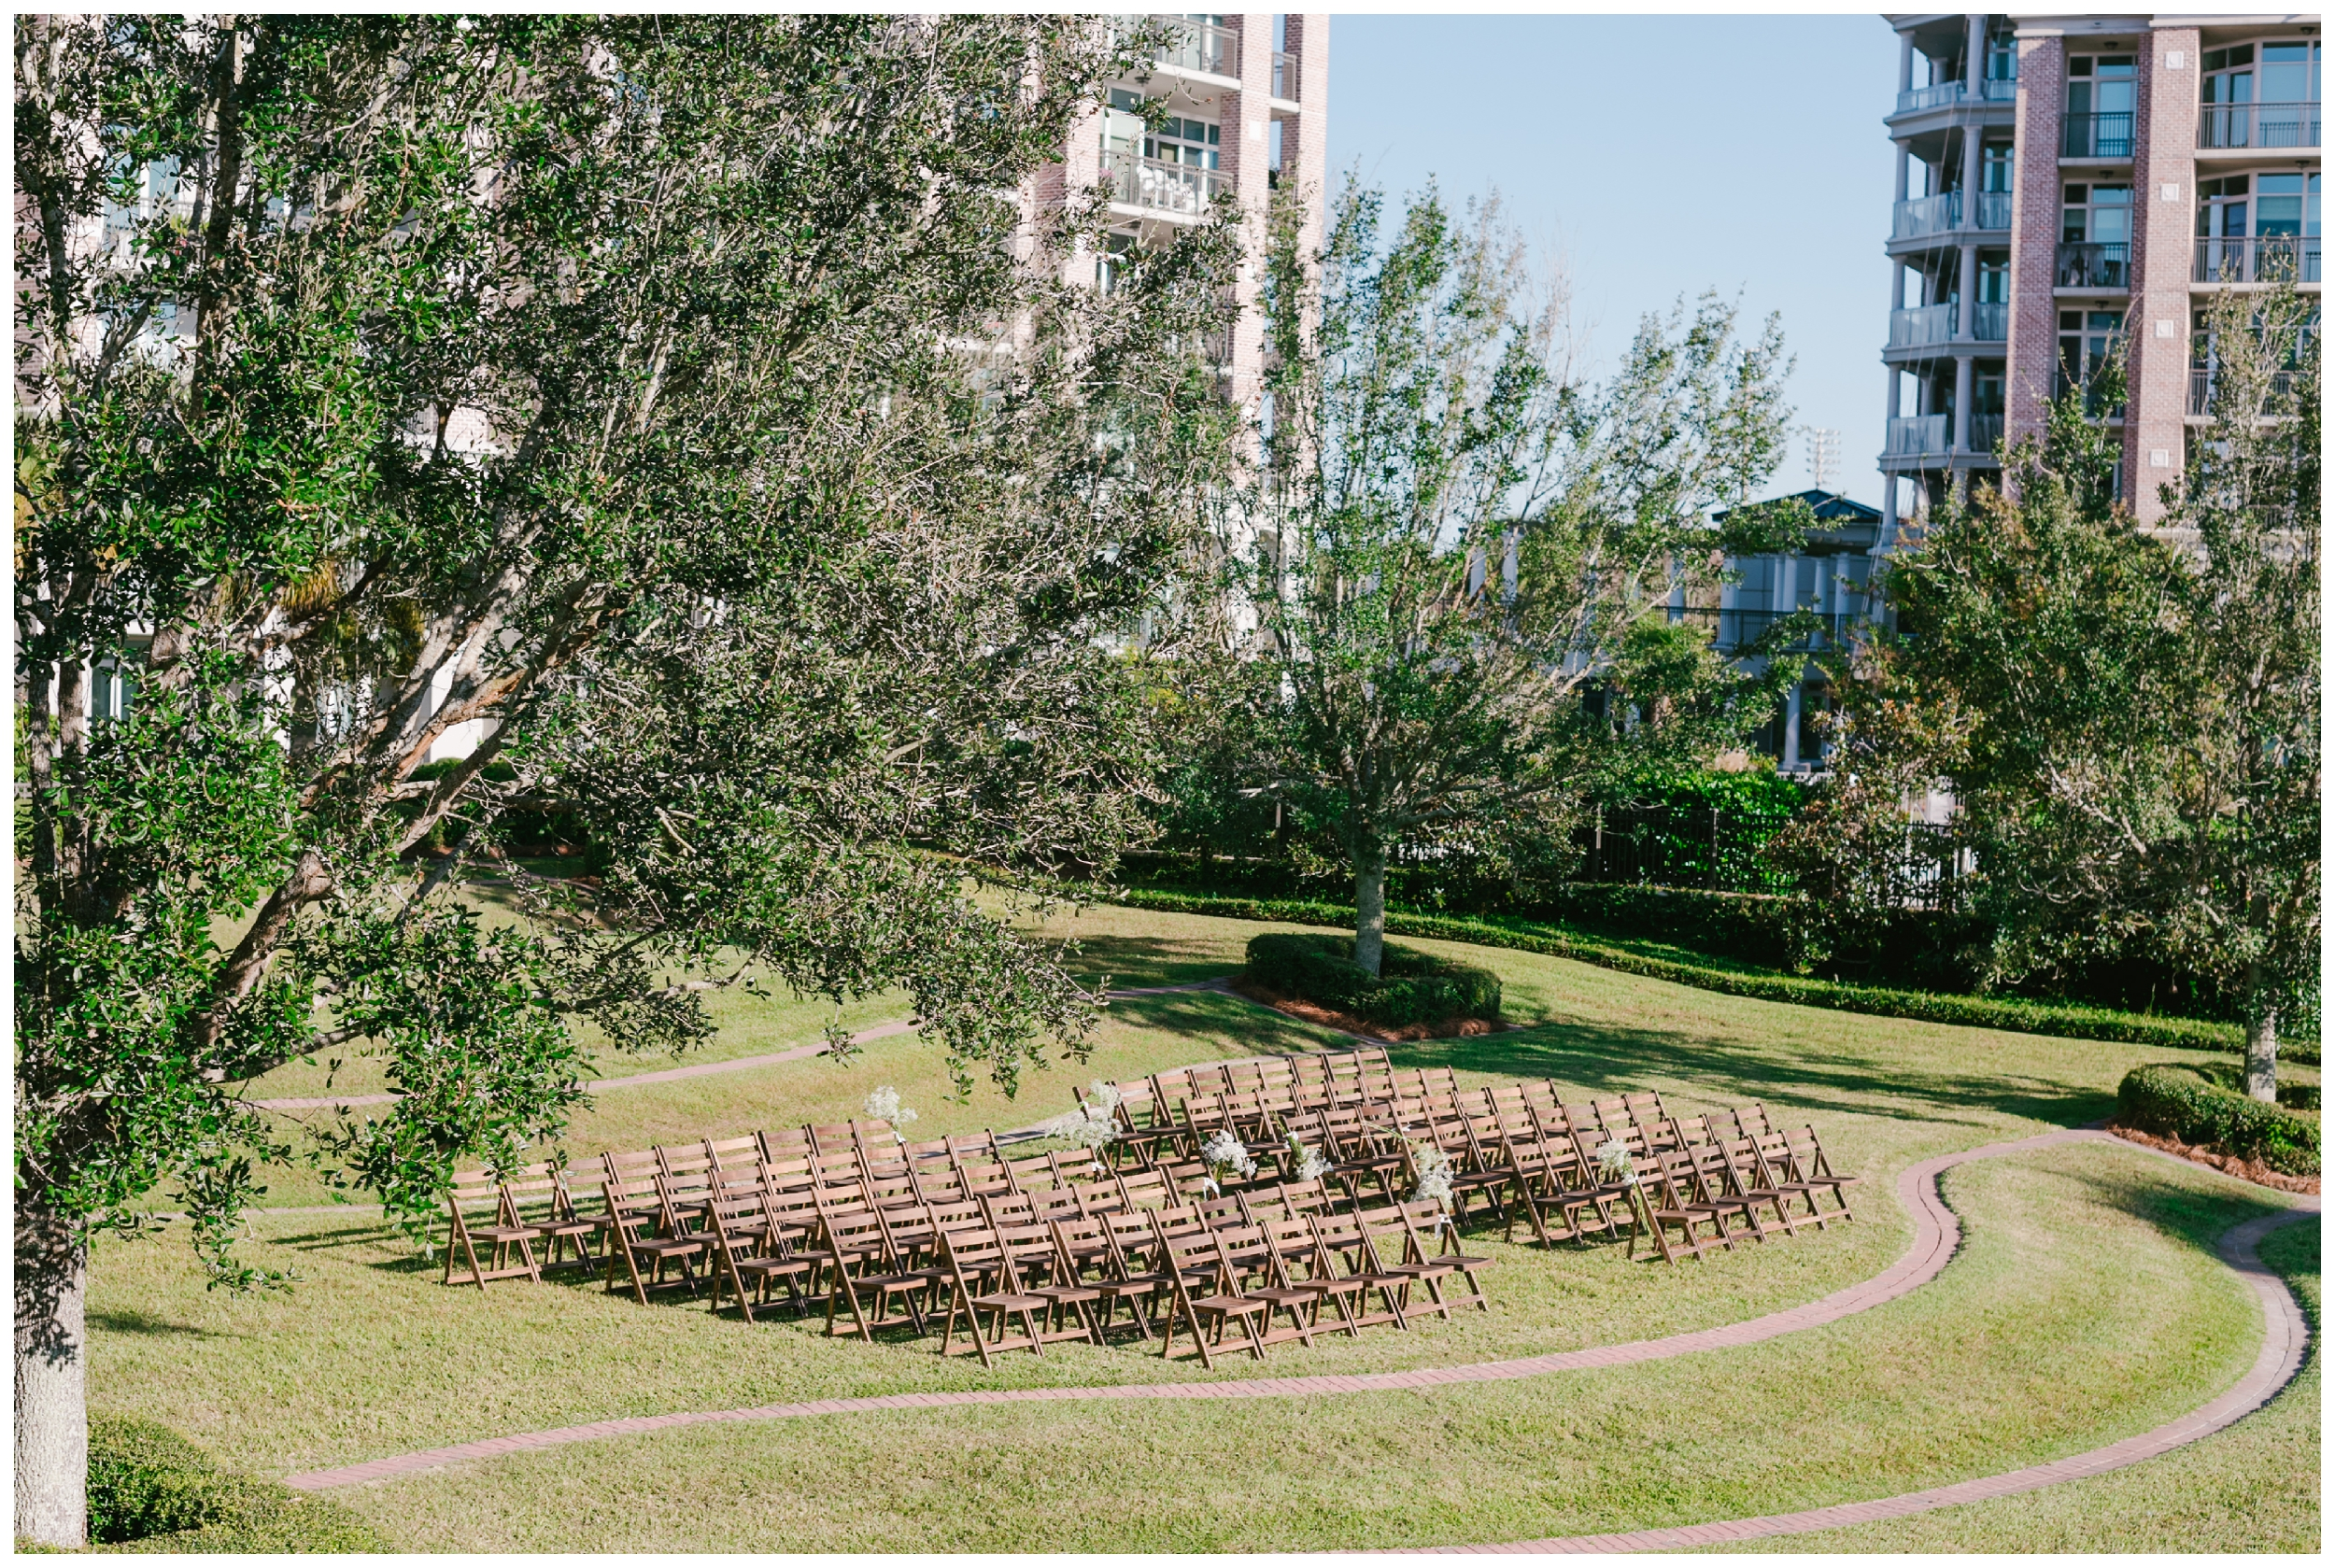 ceremony set up on the lawn at harbor side east in mt. pleasant